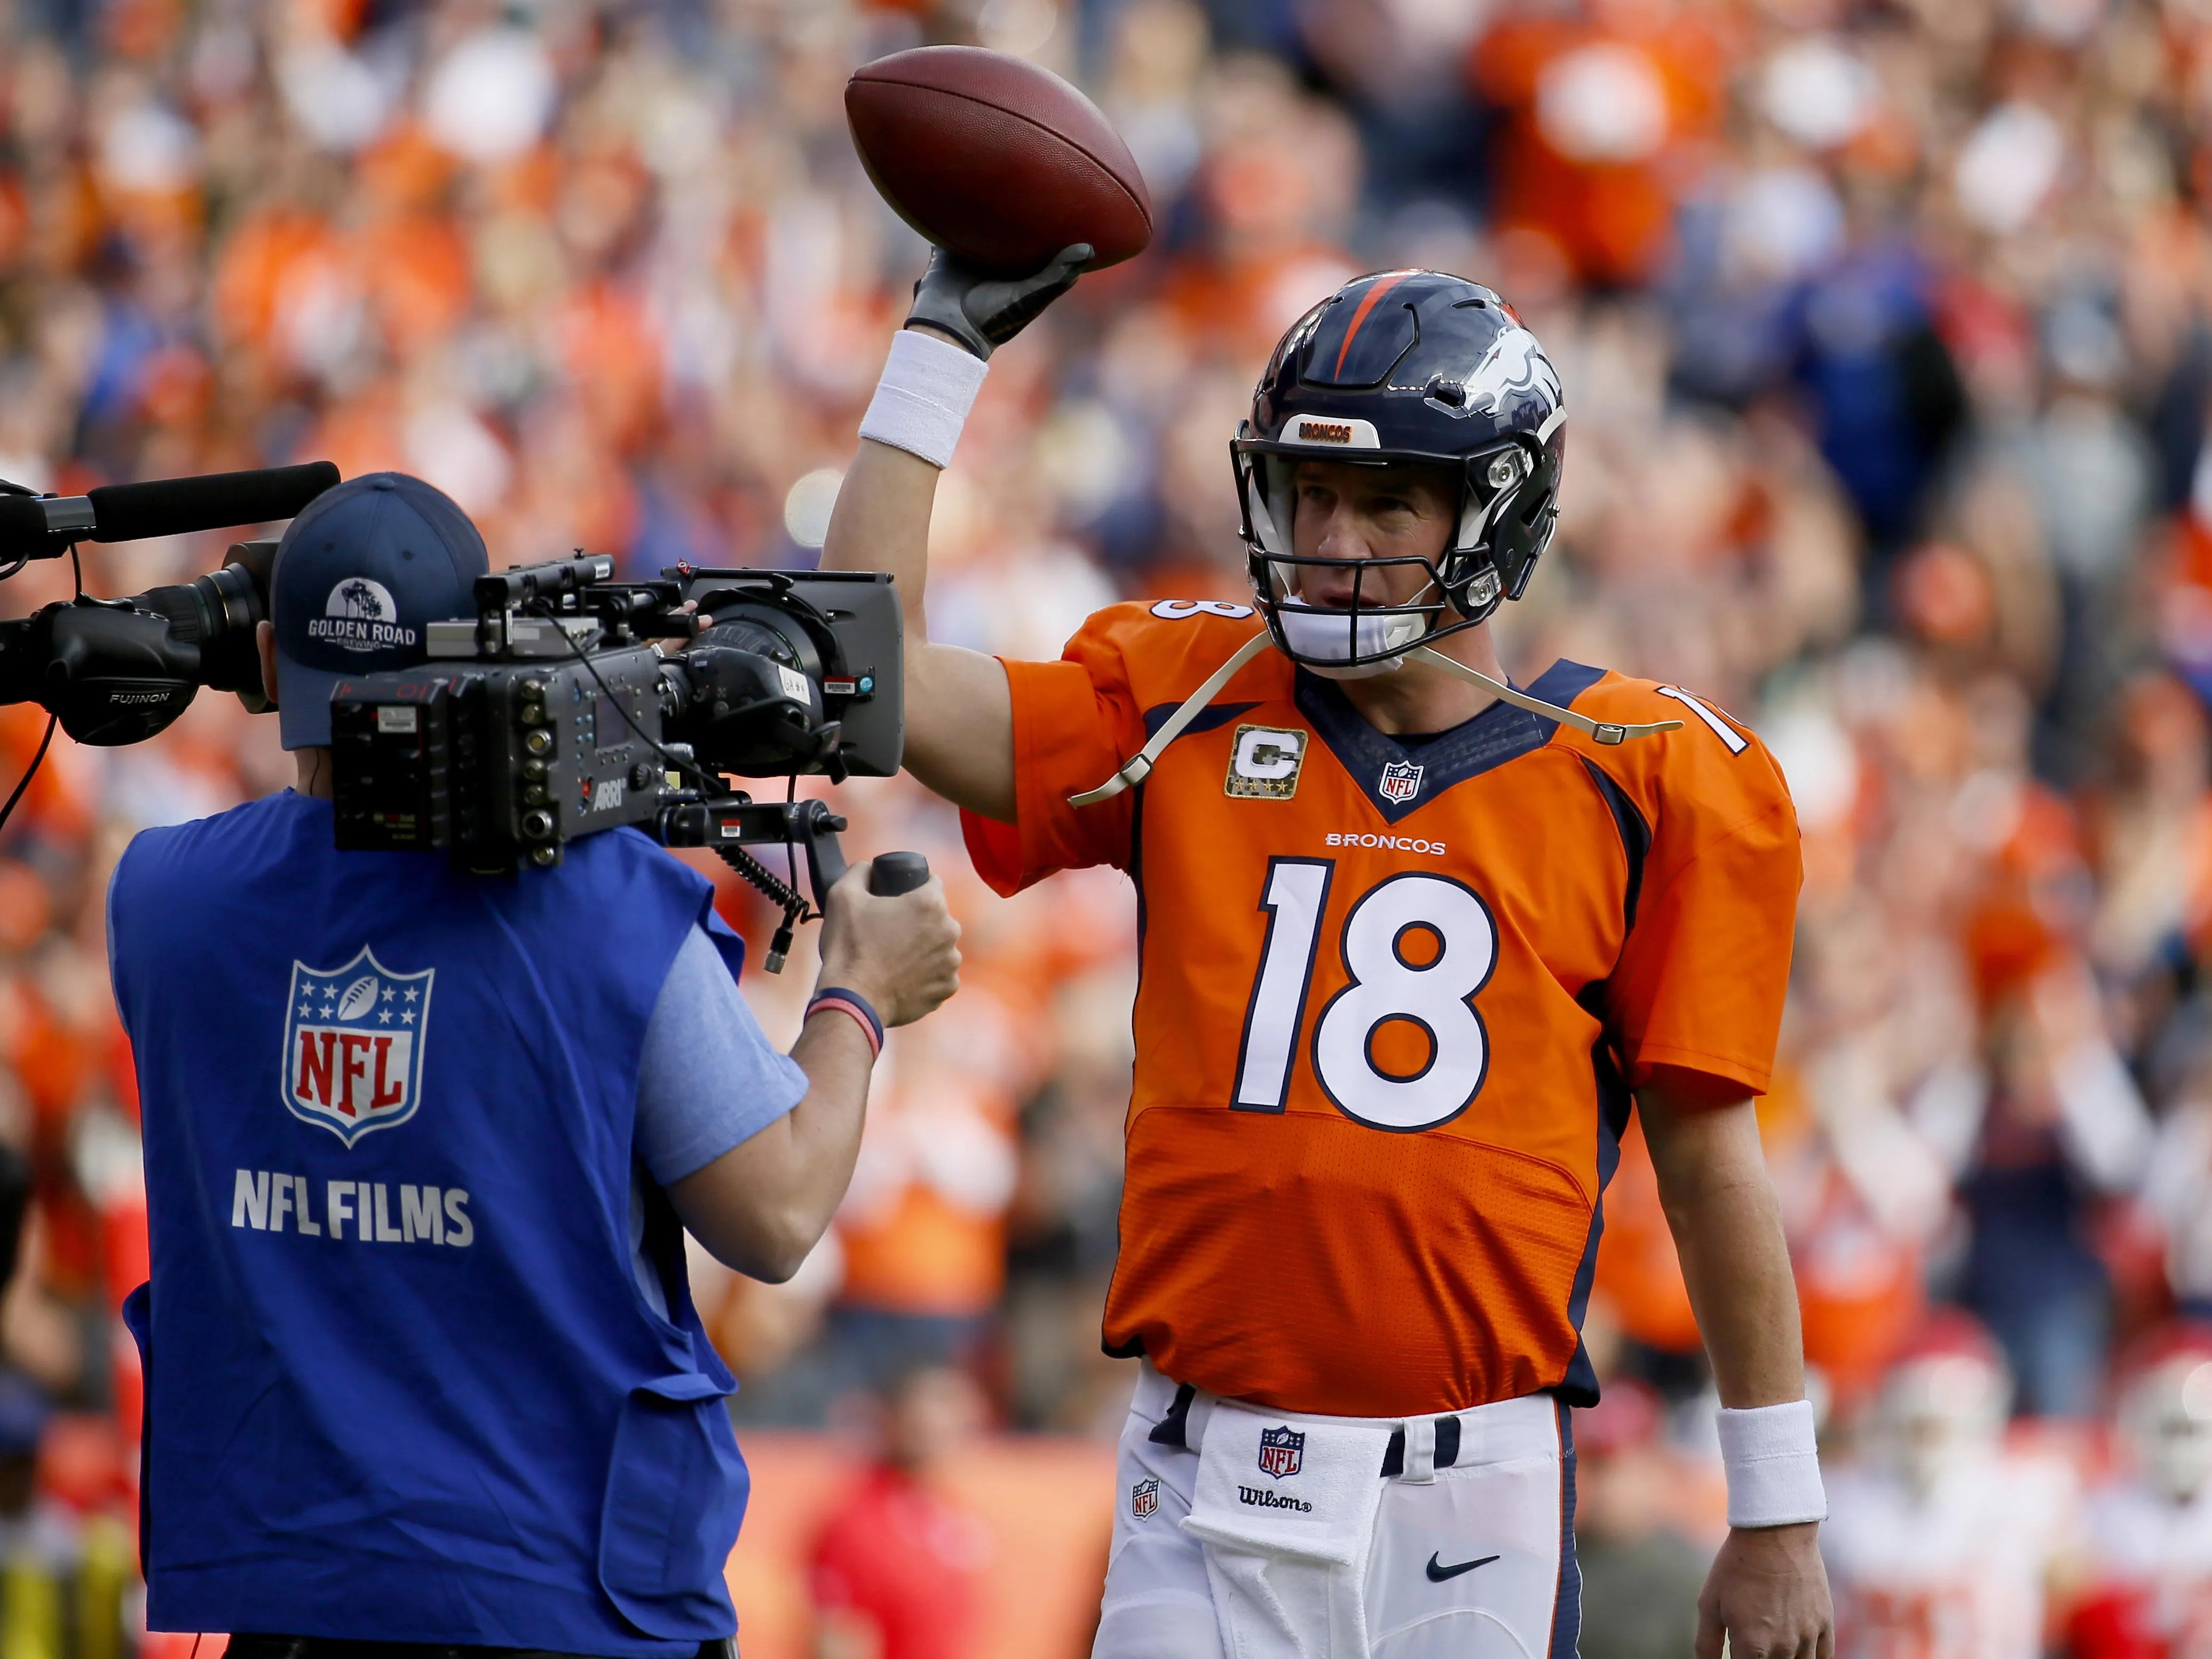 super popular a258a 7926b Peyton Manning angrily denies report he used PEDs   USA ...